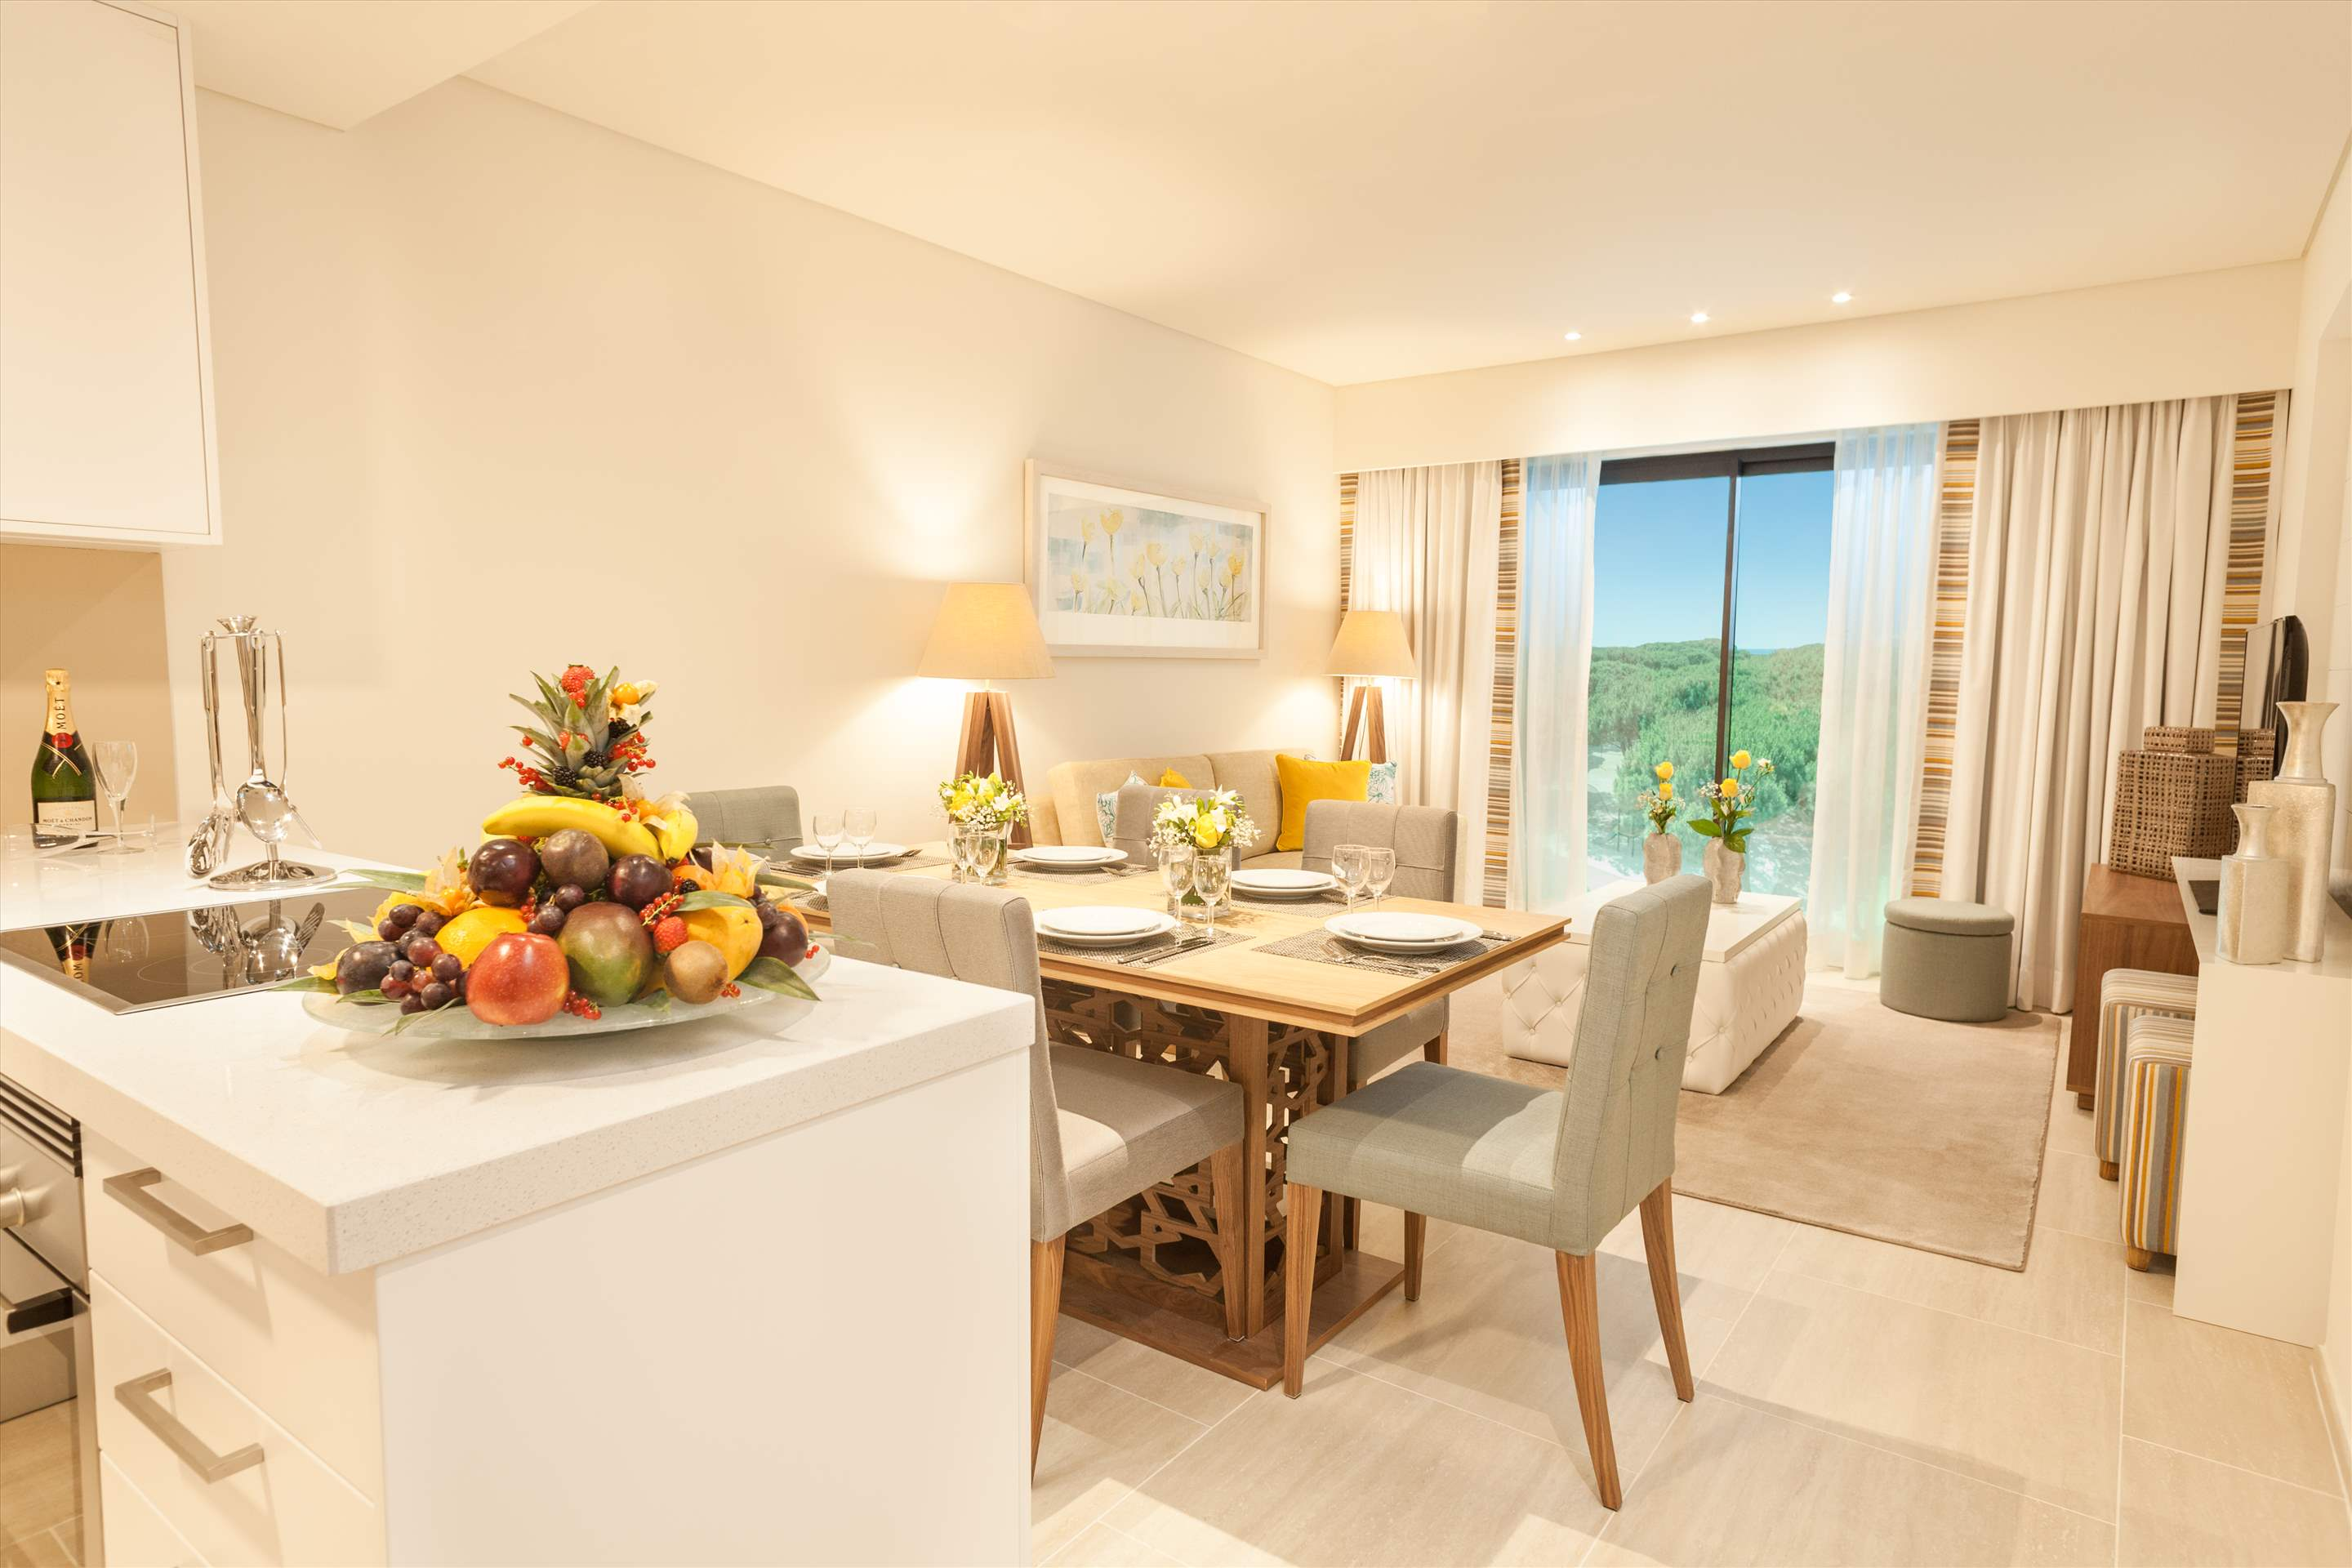 Pine Cliffs Gardens, Two Bedroom Suite, S/C Basis, 2 bedroom apartment in Pine Cliffs Resort, Algarve Photo #2